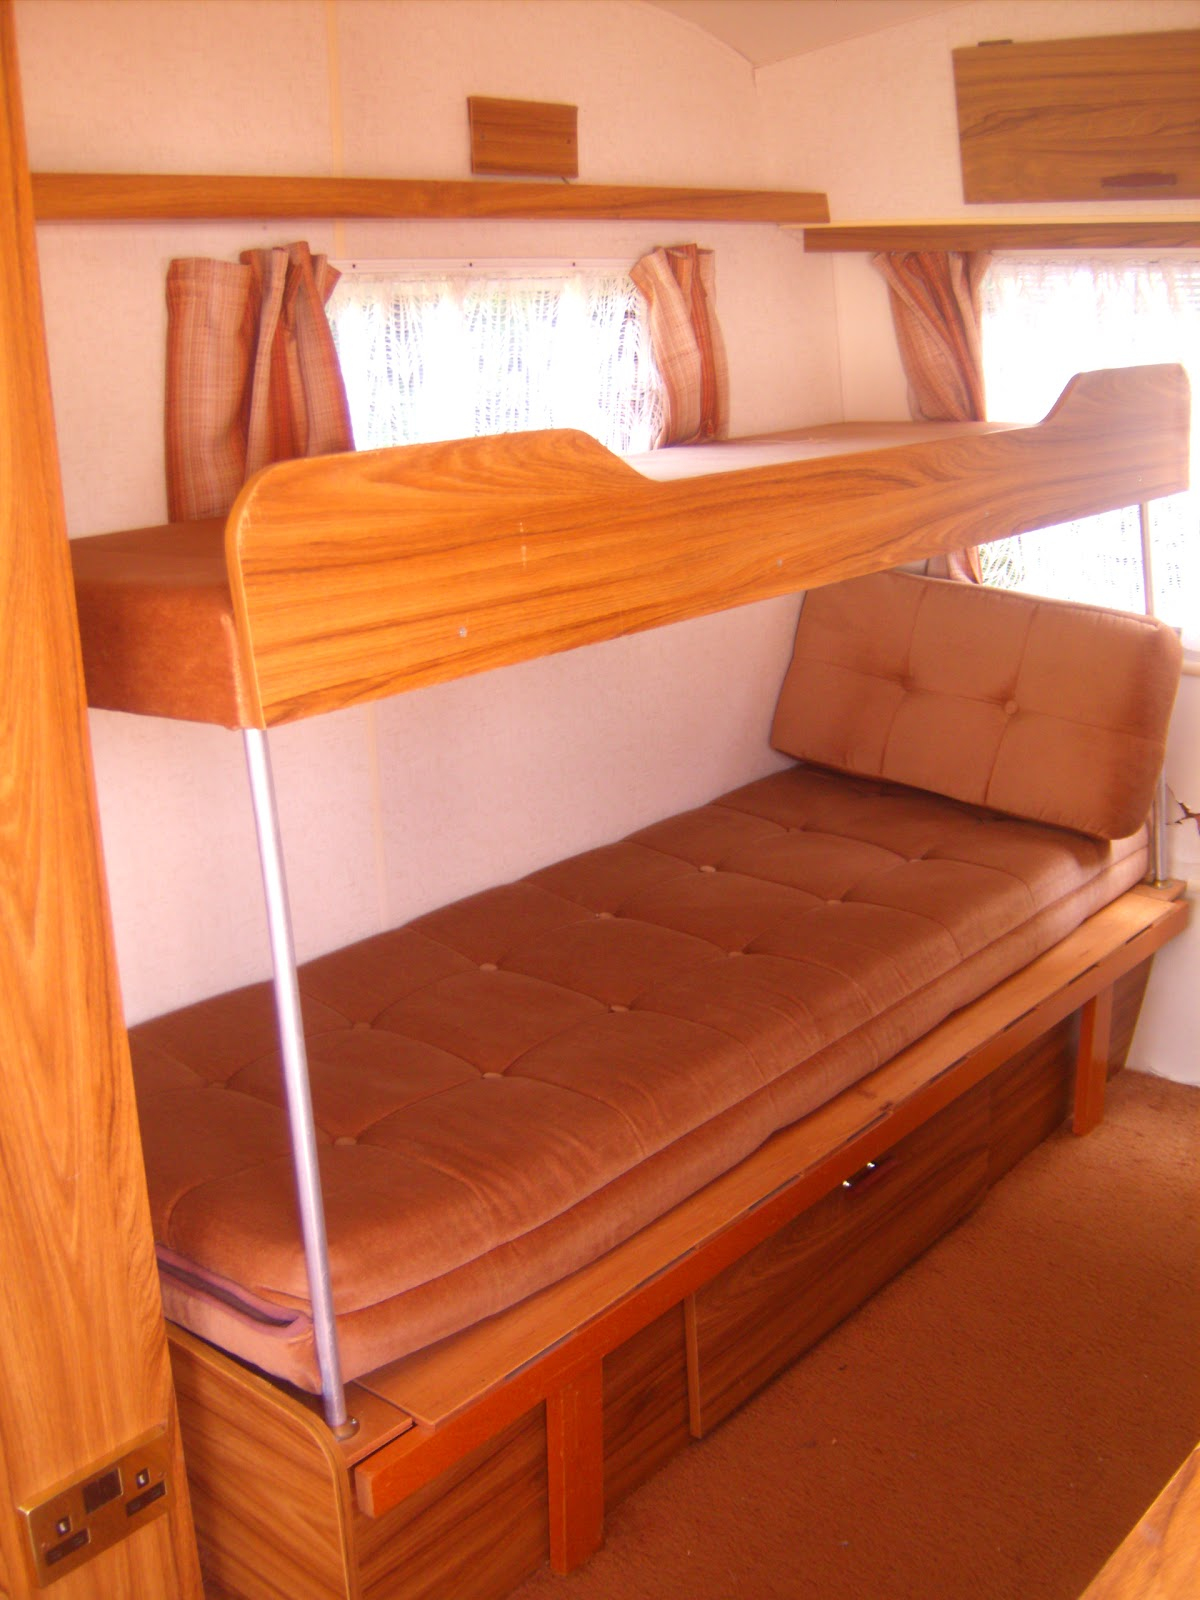 1000 Ideas About Enclosed Bed On Pinterest: 1000+ Ideas About Caravan Bunks On Pinterest